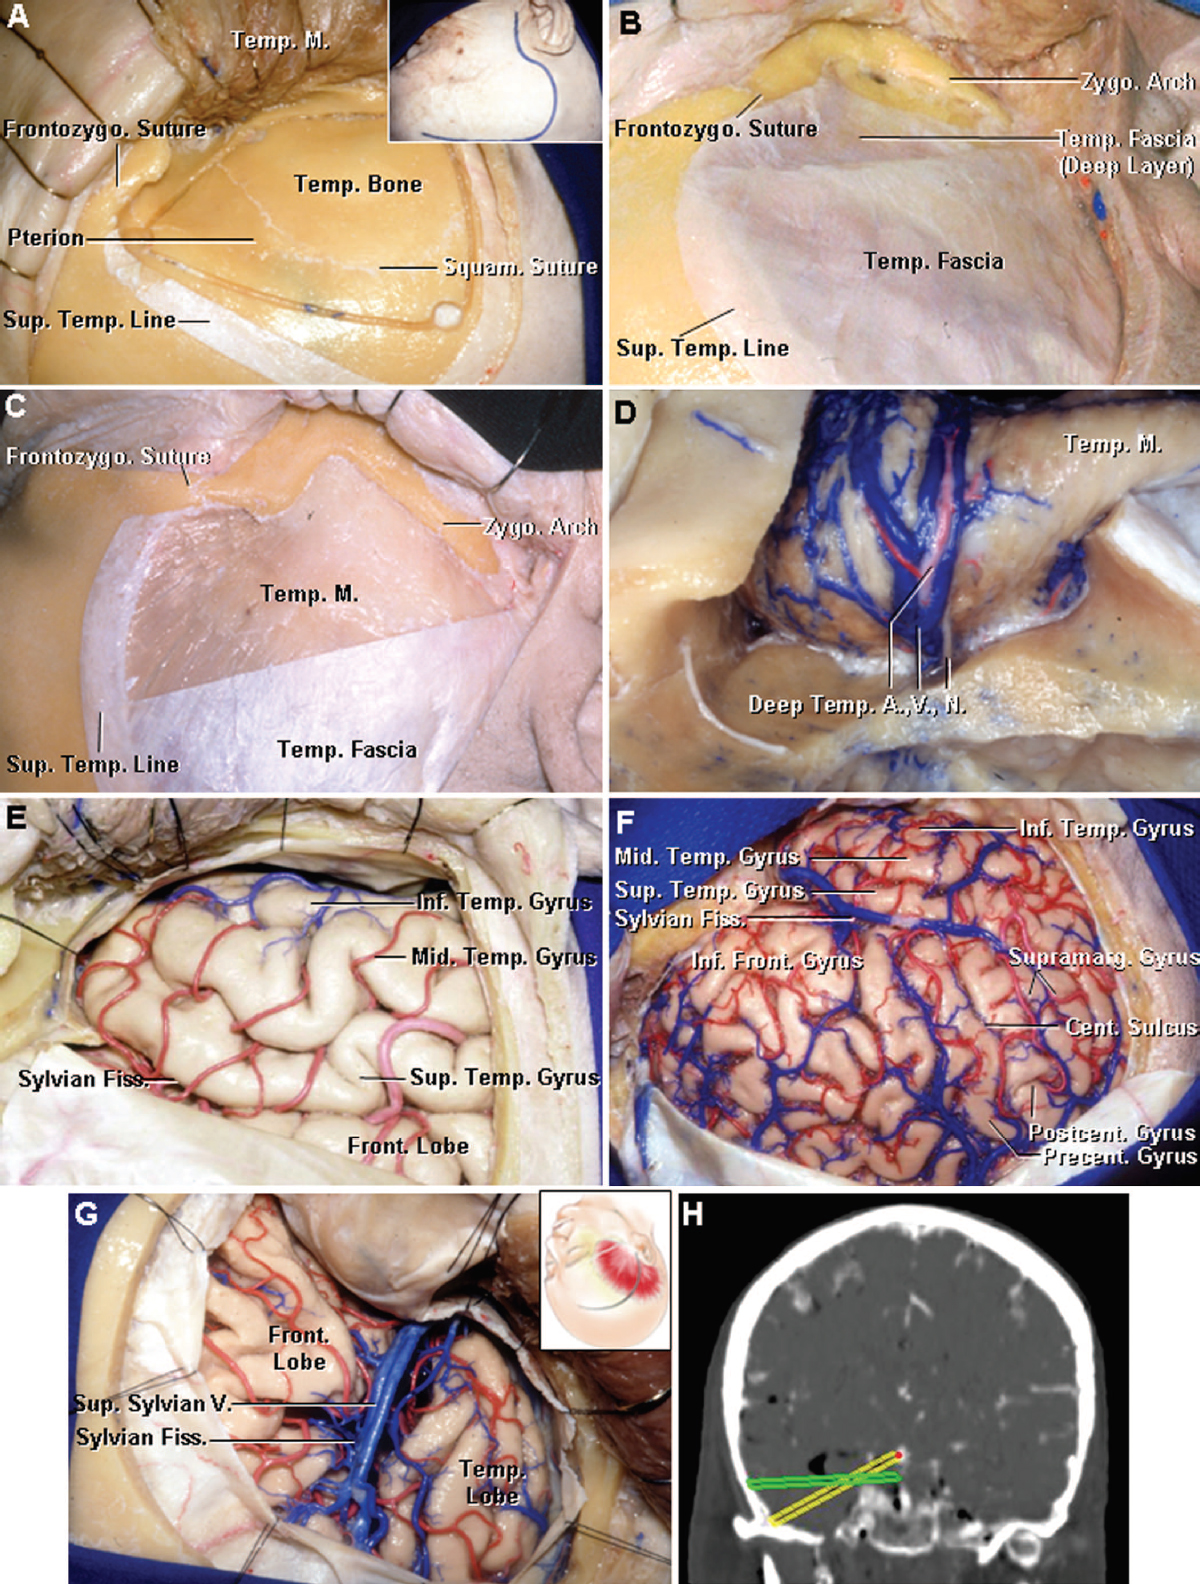 Figure 6. Images showing the craniotomy procedure for exposure of temporal lobe. A, insert shows the skin incision, which extends more posteriorly above the ear than with the usual pterional craniotomy. The scalp and temporalis muscle have been elevated to show the bone flap for a temporal lobectomy. The bone flap, centered below the squamosal suture, will be smaller if only a transsylvian or transbasal or direct temporal lobectomy is needed and will be larger if cortical mapping and electrocardiography are to be carried out. A cuff of fascia remains attached along the superior temporal line to aid in a closure. B, interfascial dissection of the temporalis fascia has been completed. In this exposure, the superficial layer of temporalis fascia has been incised and folded down with the galea to preserve the branches of the facial nerve to the frontalis muscle, which course on the outer surface of the temporalis fascia. C, subfascial approaches in which both the superficial and deep layers of temporalis fascia are elevated to preserve the branches of the facial nerve. The authors prefer the interfascial shown in B. It is best to avoid cutting into the muscle, which may result in scarring, atrophy, cosmetic deformity, and disorders of mastication. D, temporalis muscle has been folded downward. The careful handling of this muscle is important in obtaining a good cosmetic result. The arterial supply, venous drainage, and nerve supply all course on the deep surface of the muscle directly on the periosteal surface of the bone. Using a hot cutting current to elevate the muscle will often damage the muscle's nerve and vascular supply with resulting temporalis atrophy and a poor cosmetic result. It is best to elevate the muscle using careful subperiosteal dissection with a sharp periosteal elevator. E, exposure of the right temporal lobe used in cases in which the preoperative studies have clearly defined a lesion in the medial temporal lobe and there is no need to expose the area above the sylvian fissure. F, more extensive exposure above the sylvian fissure is used if cortical mapping and electrocardiography are needed to define the extent of resection and the seizure focus. G, pterional exposure used for the transsylvian-transinsular and transsylvian-transcisternal approaches. The insert shows the site of the scalp incision. H, magnetic resonance imaging scan with image guidance showing the operative trajectory both before and after dividing the zygomatic arch. The green image shows the trajectory obtained if the zygomatic arch remains and the muscle is folded downward over the upper edge of the arch. The yellow image shows the lower trajectory obtained after dividing the zygomatic arch and folding the muscle down between the divided edge of the arch. A., artery; Cent., central; Fiss., fissure; Front., frontal; Frontozygo., frontozygomatic; Inf., inferior; M., muscle; Mid., middle; N., nerve; Postcent., postcentral; Precent., precentral; Squam., squamosal; Sup., superior; Supramarg., supramarginal; Temp., temporal; V., vein; Zygo., zygomatic. (Images courtesy of AL Rhoton, Jr.)